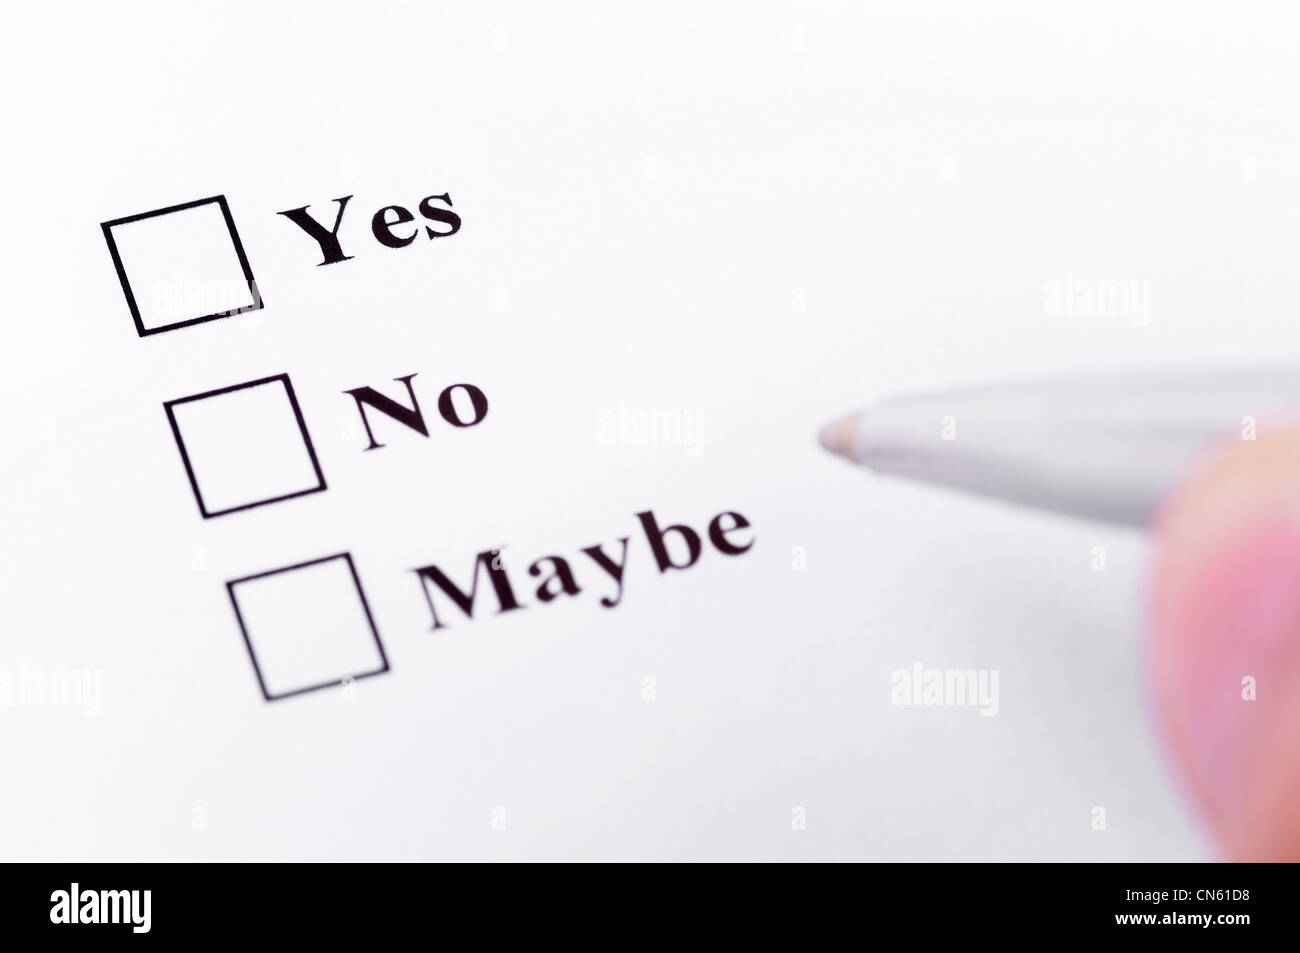 Making your decision. About to choose between yes, no, maybe. Stock Photo